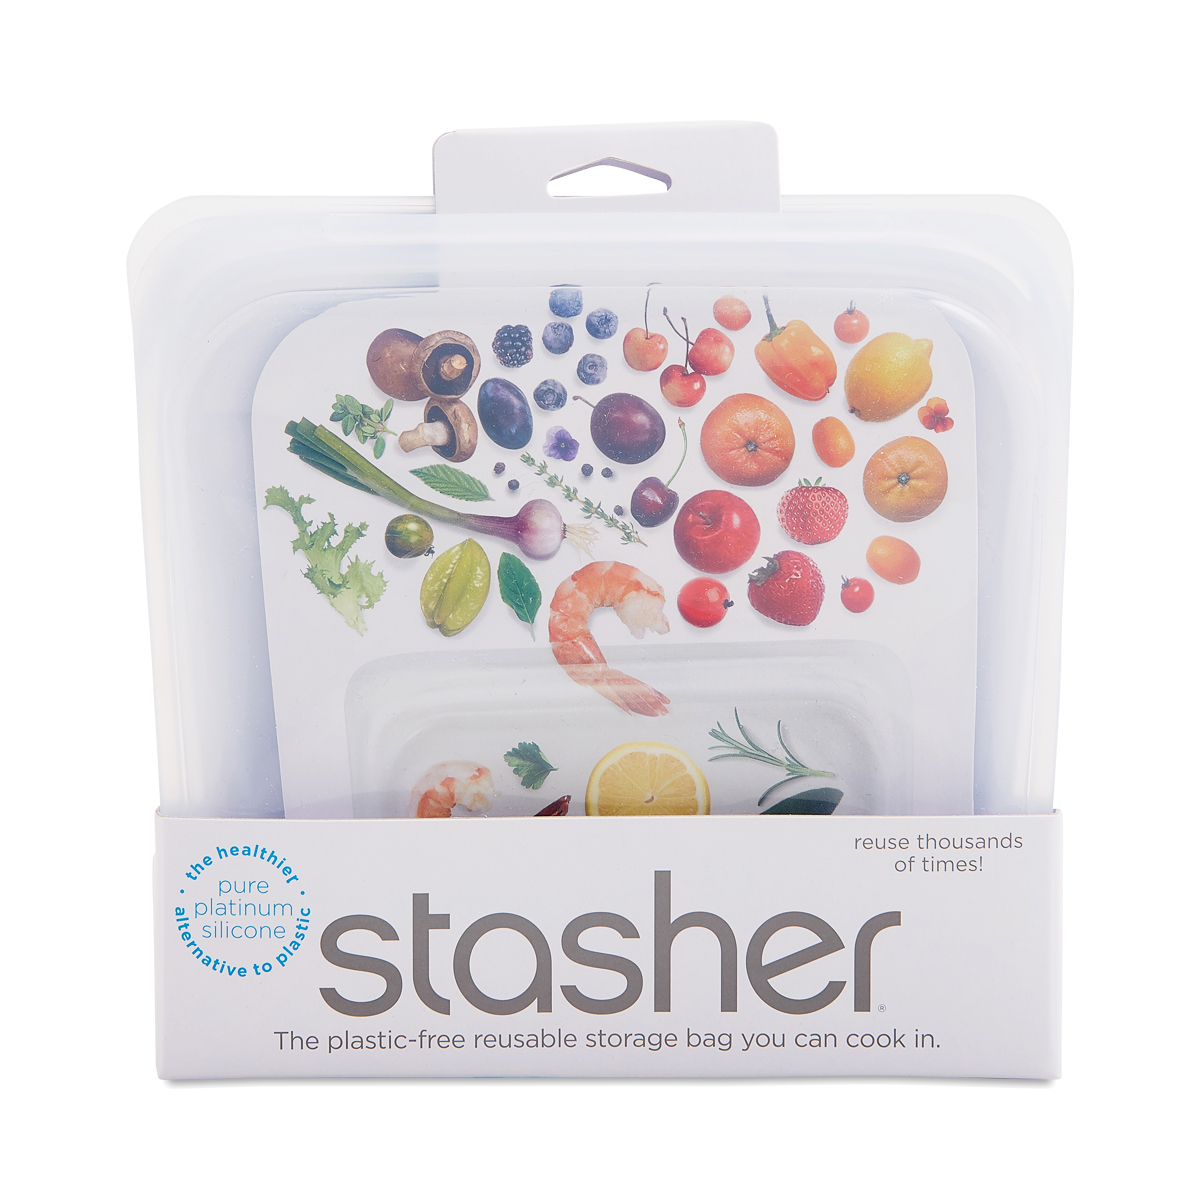 Stasher Reusable Silicone Bag, Clear 1 count